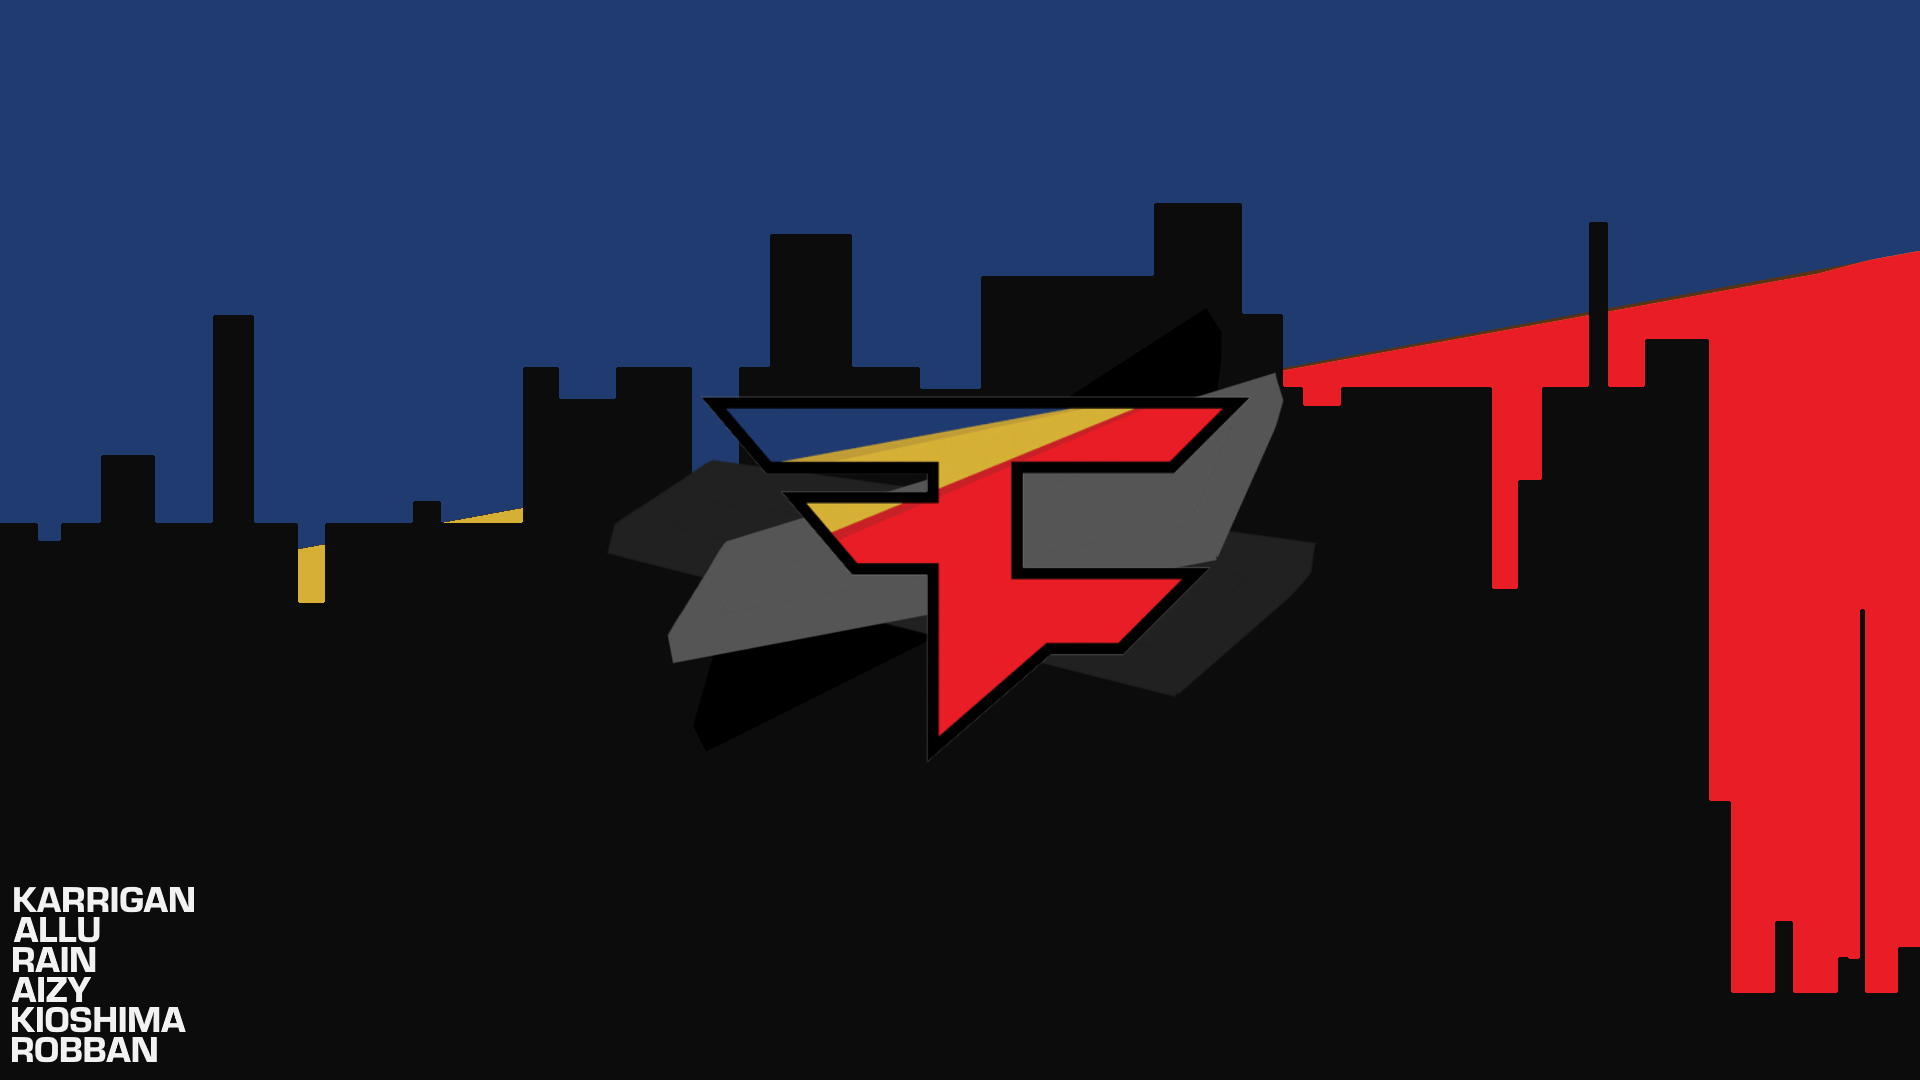 Faze clan 2 0 cs go wallpapers and backgrounds - 2 0 wallpaper ...